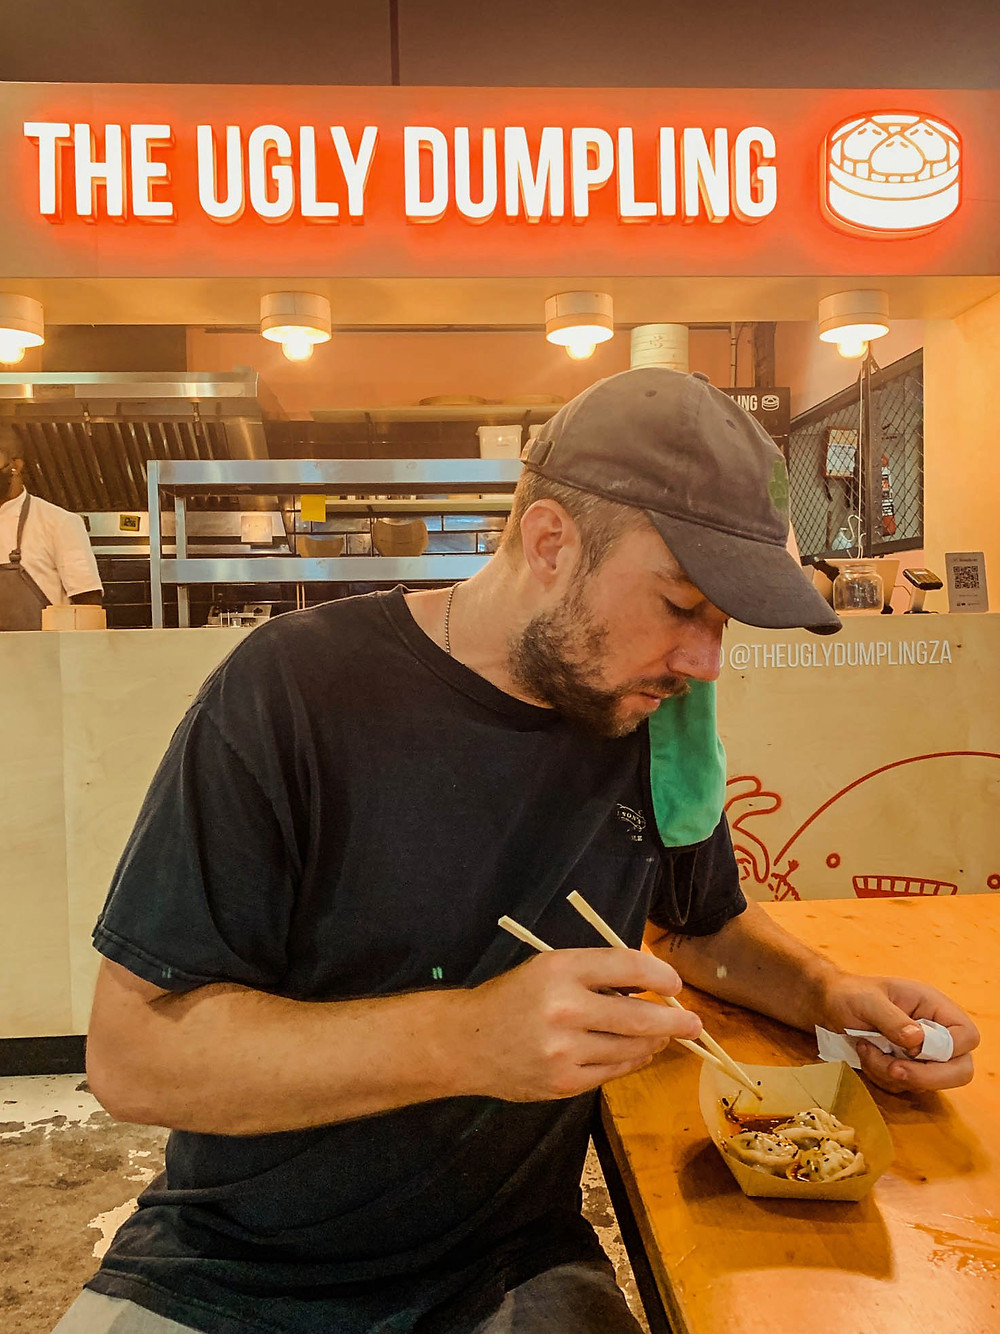 Perfect ugly dumpling for an Ugly Dumpling pic - some of Cape Town's delicious food!